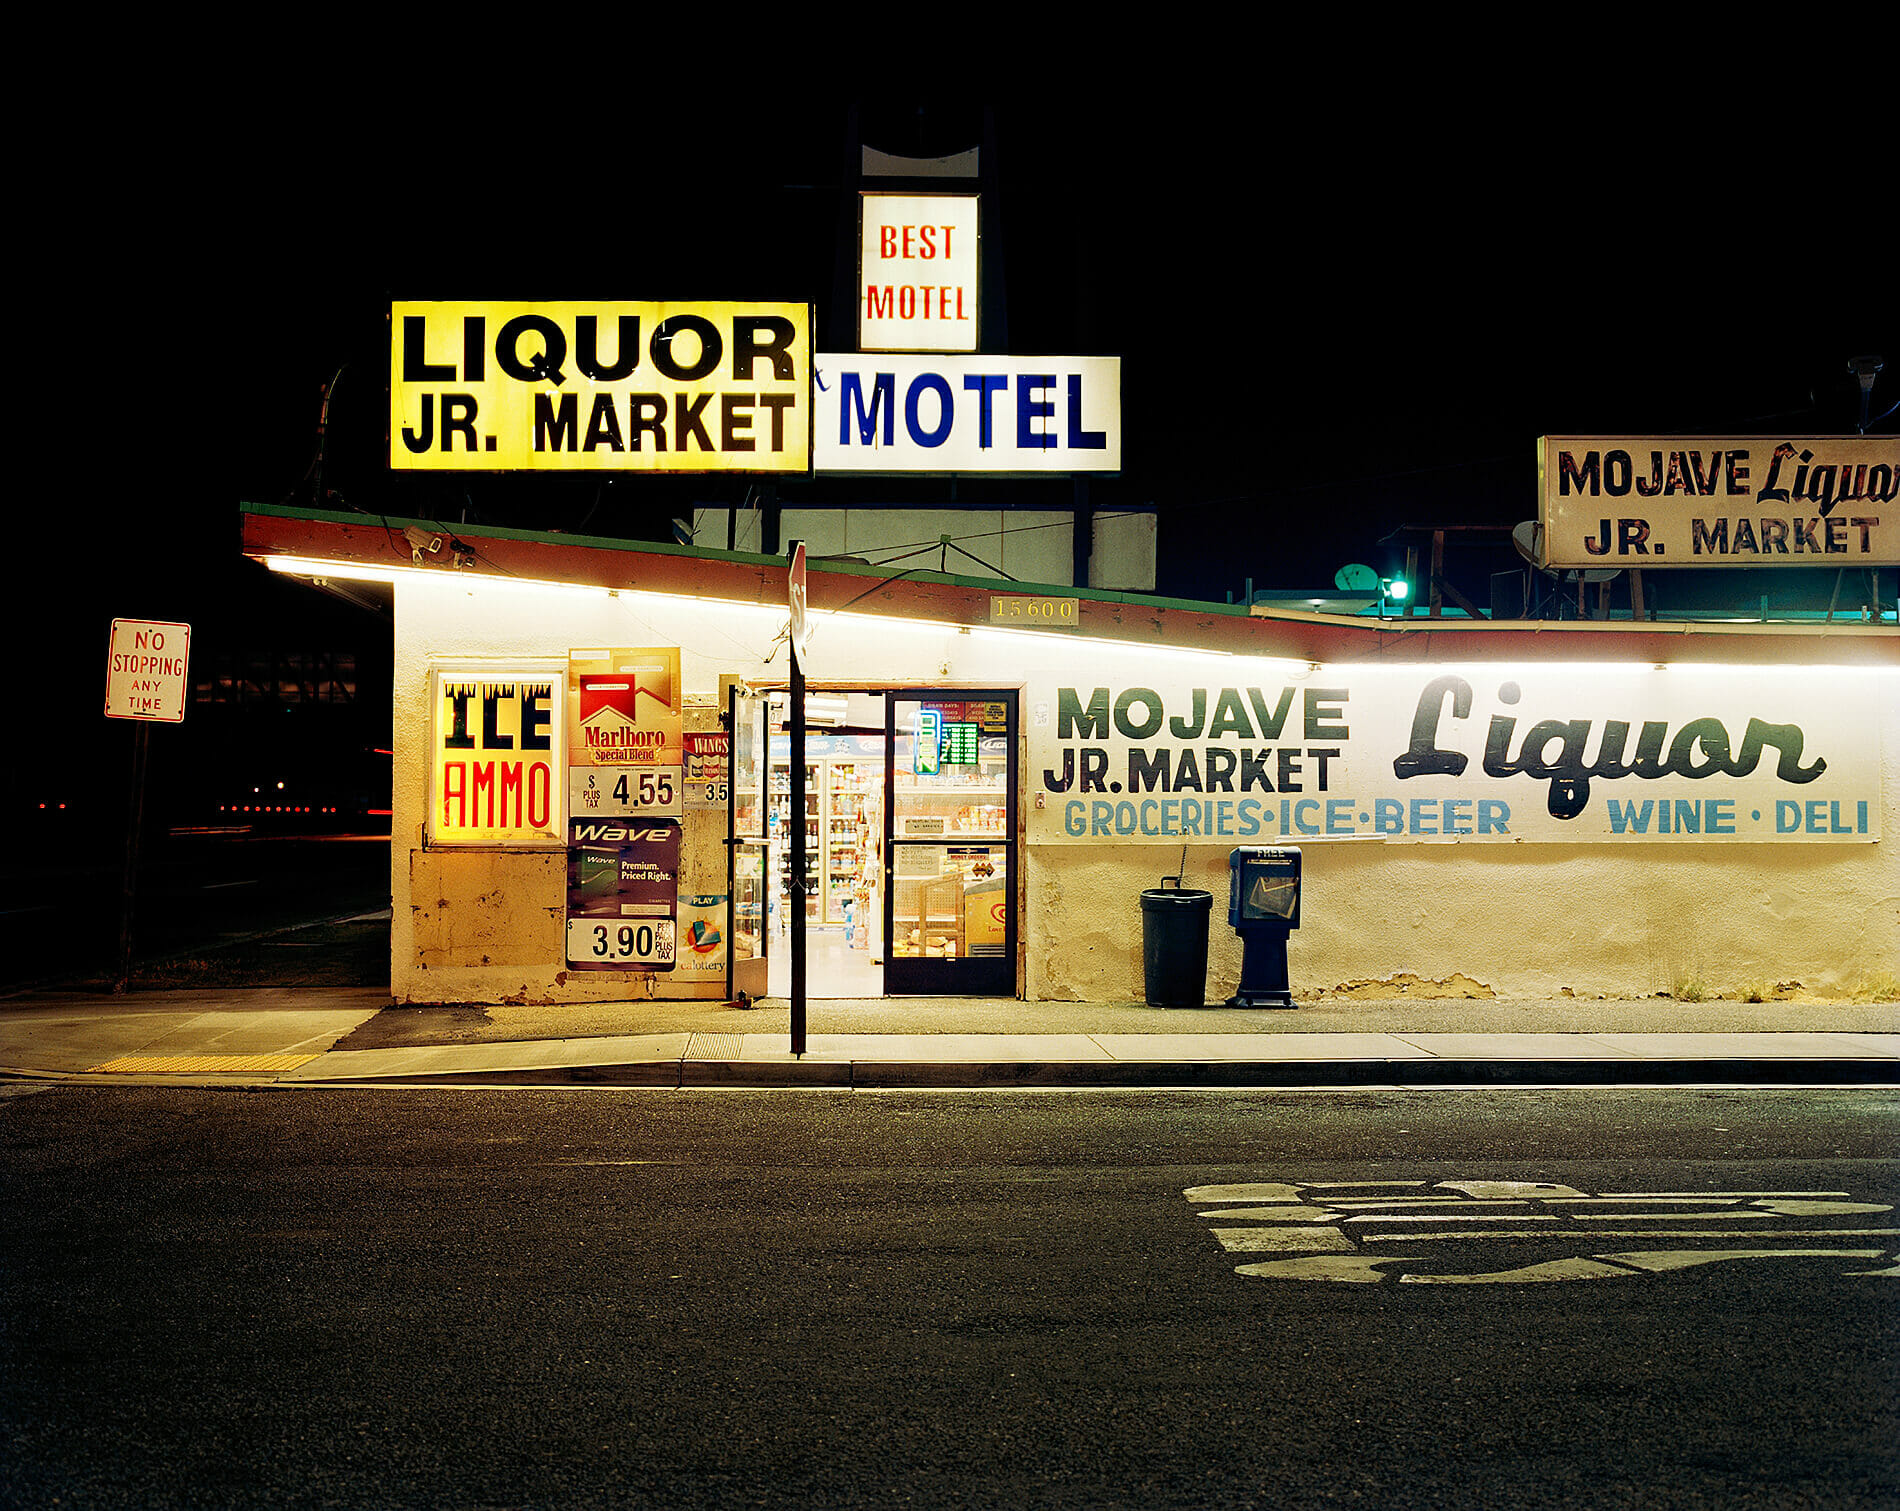 Mojave liquor store at night